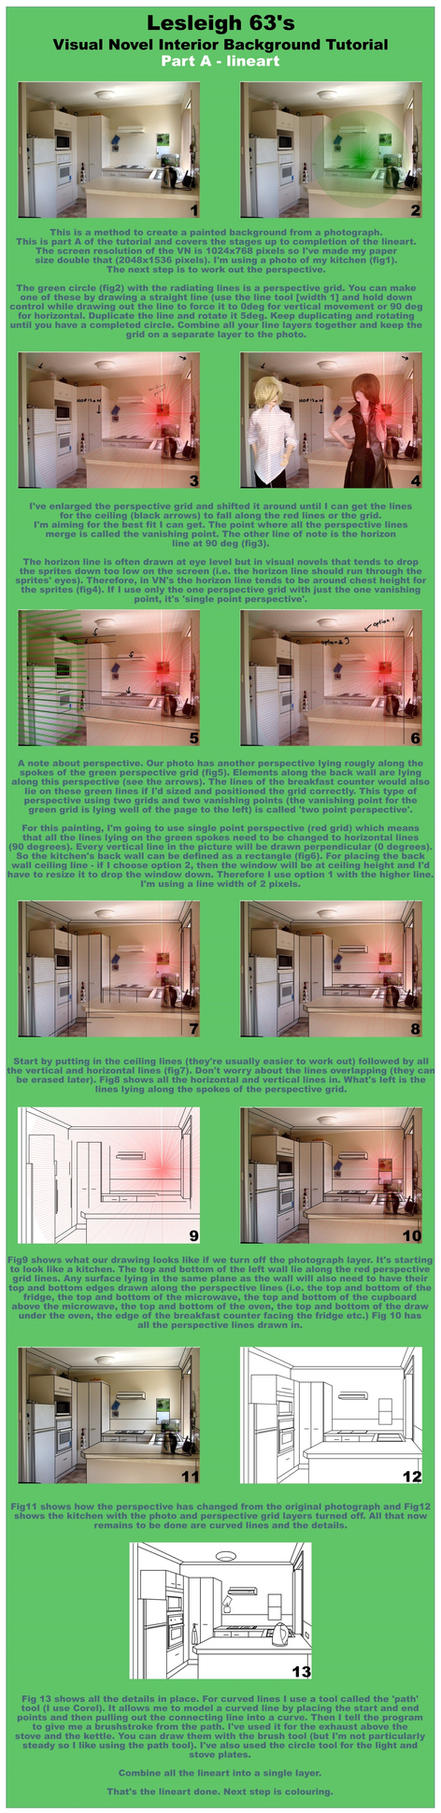 VN 2d background interior tutorial - Part A by Lesleigh63